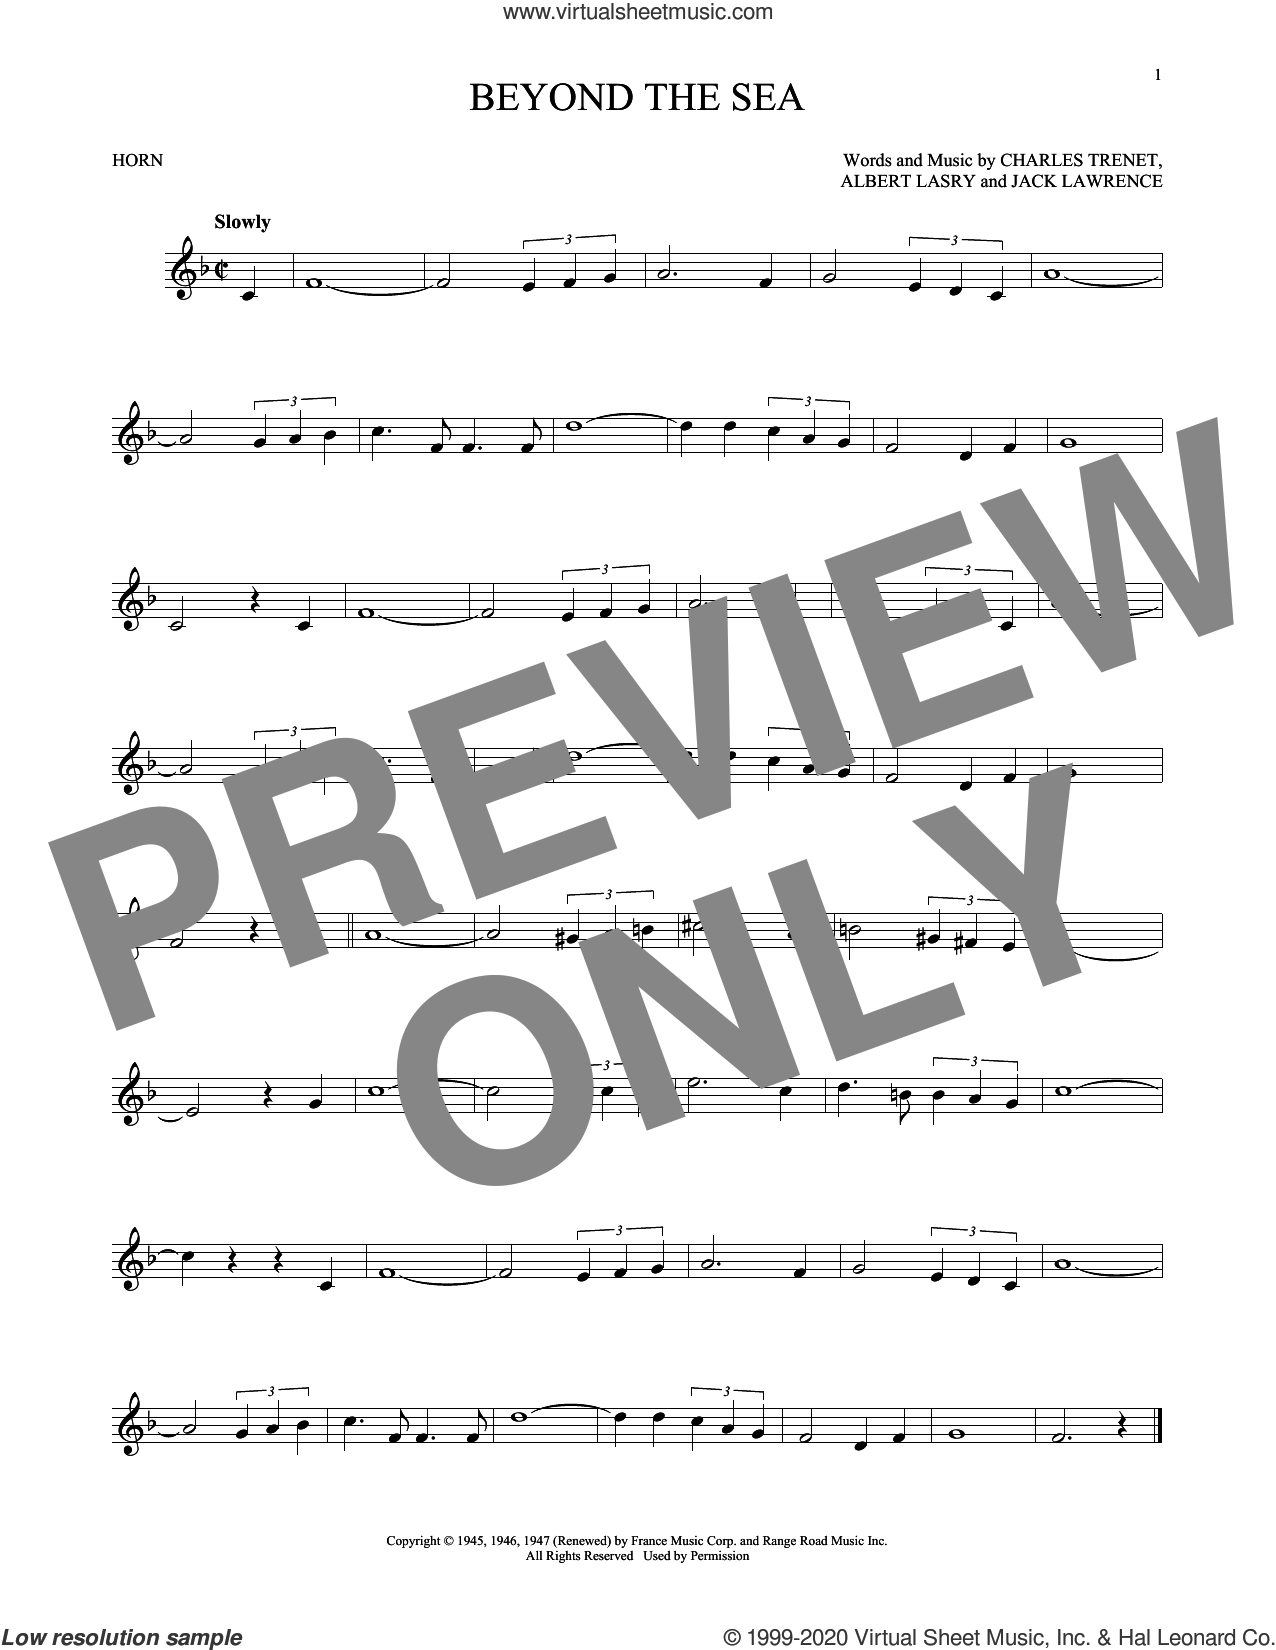 Beyond The Sea sheet music for horn solo by Bobby Darin, Roger Williams, Albert Lasry, Charles Trenet and Jack Lawrence, intermediate skill level